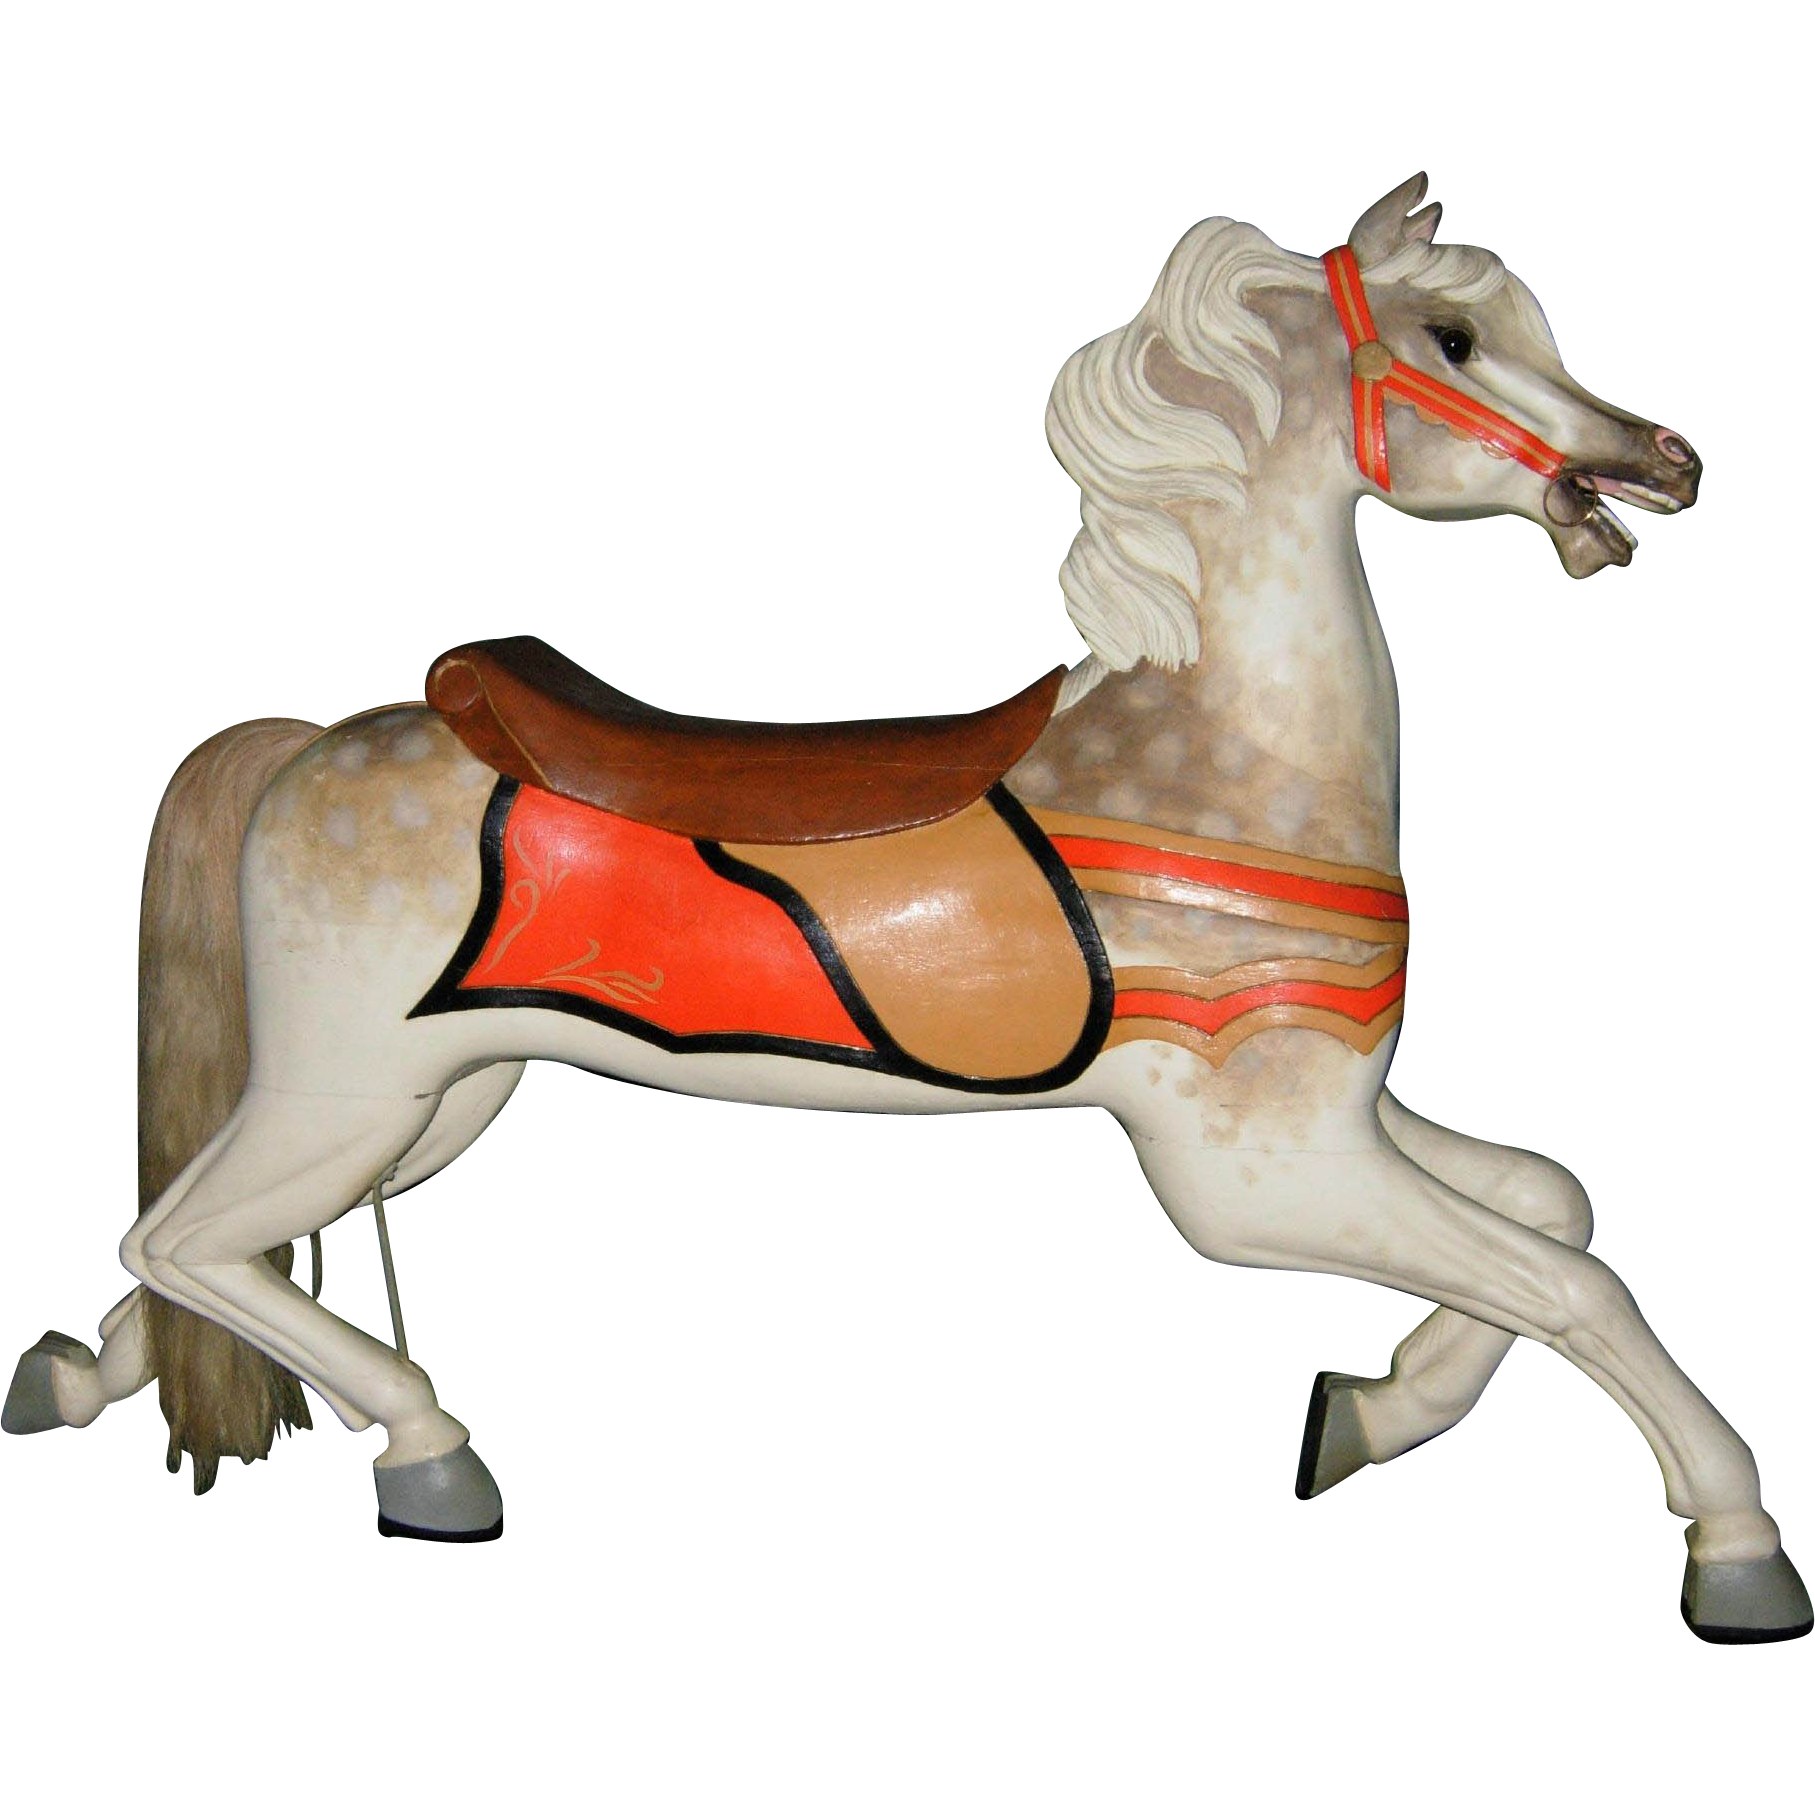 Scarce c. 1900 Antique C. W. Parker Abilene Carousel Horse Jumper - PRICE NEGOTIABLE